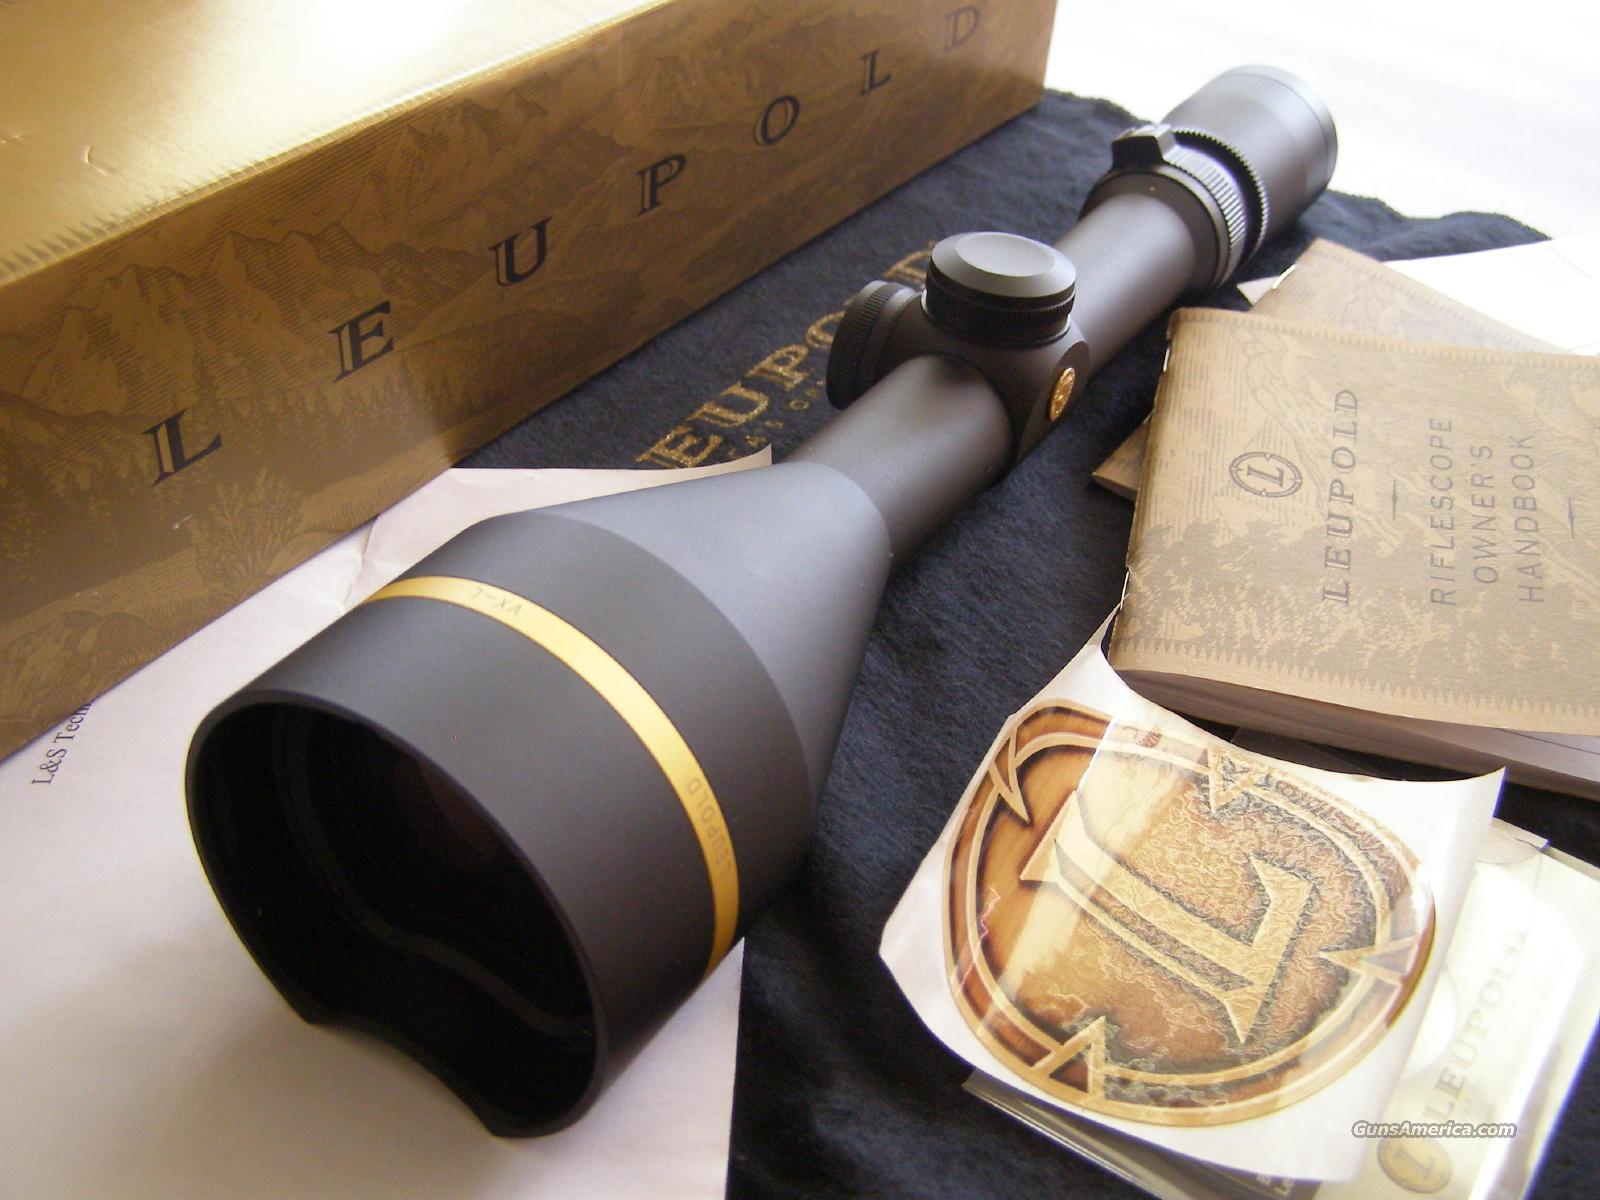 Leupold VXL 4.5-14x50 B&C  Non-Guns > Scopes/Mounts/Rings & Optics